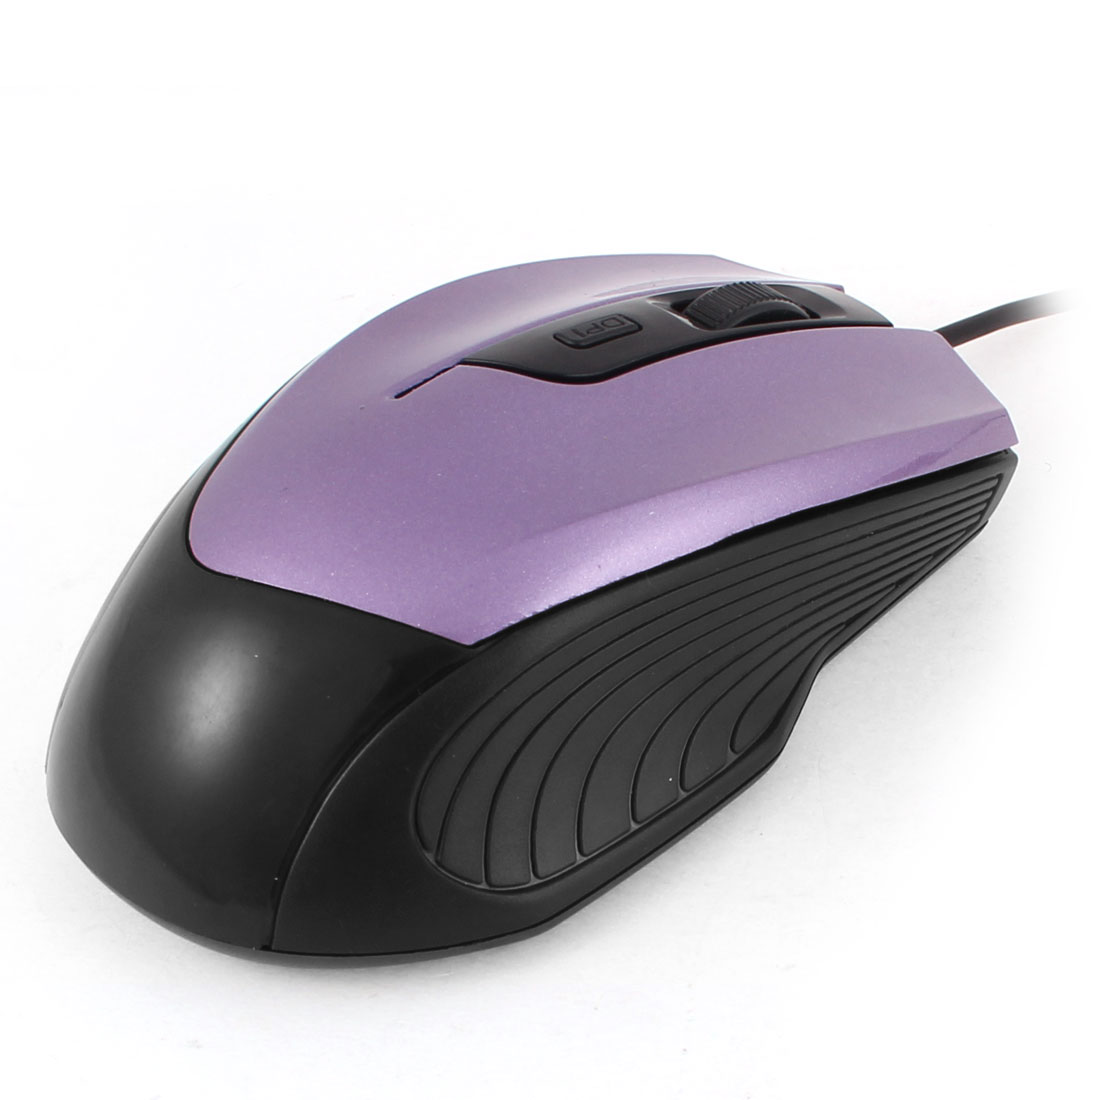 Black Purple 1200dpi 3D Scroll Wheel USB2.0 Optical Mouse for PC